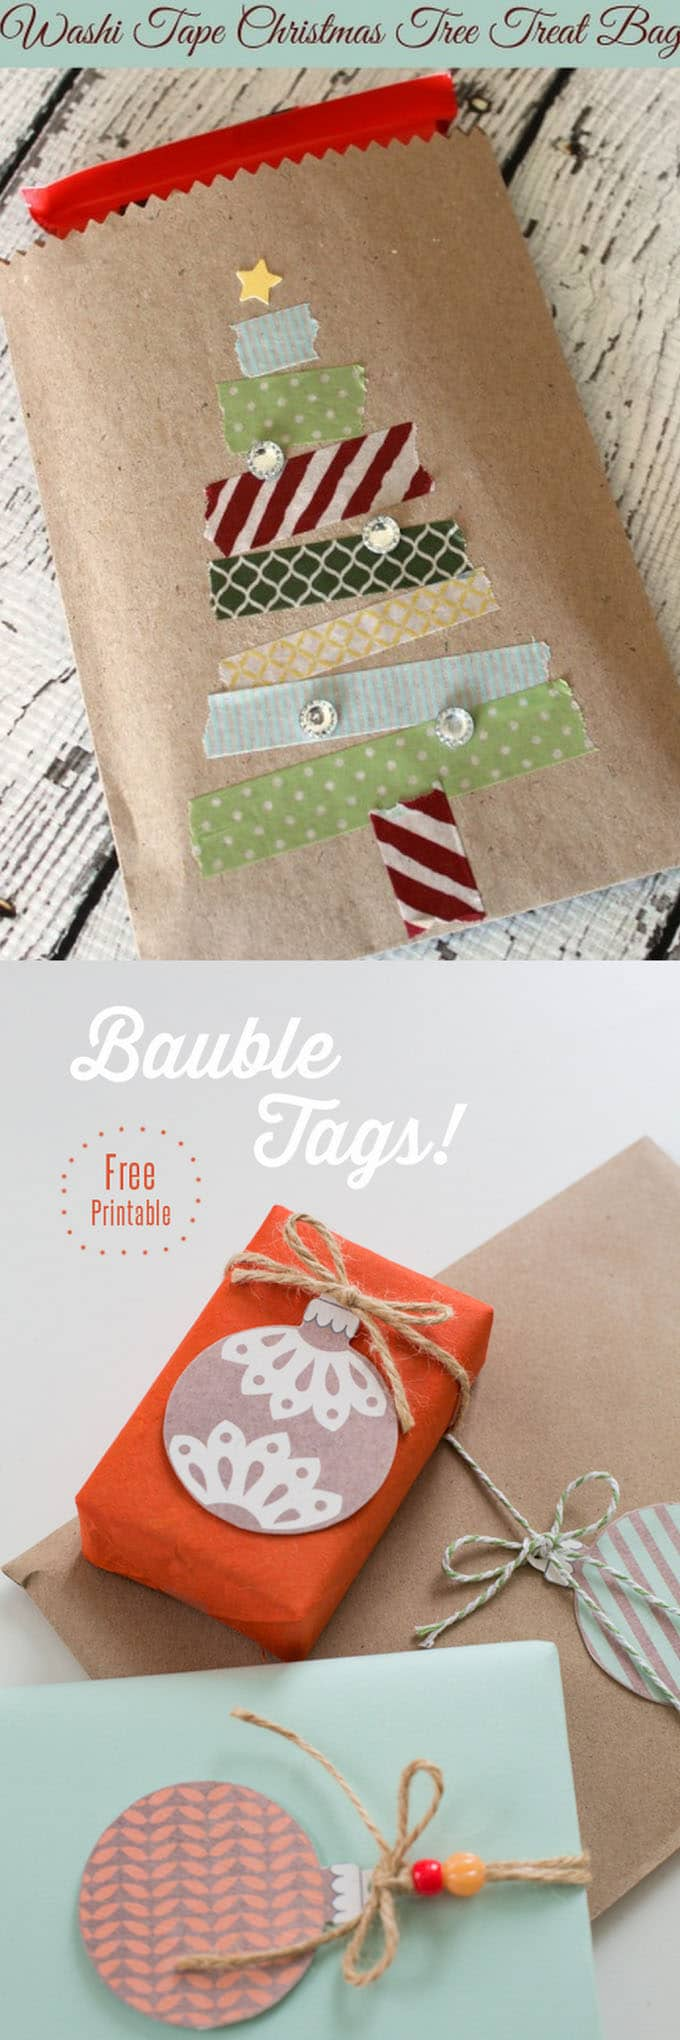 16 gift wrapping hacks apieceofrainbow 7 - 16 Favorite Easy Gift Wrapping Ideas (Many are Free!)